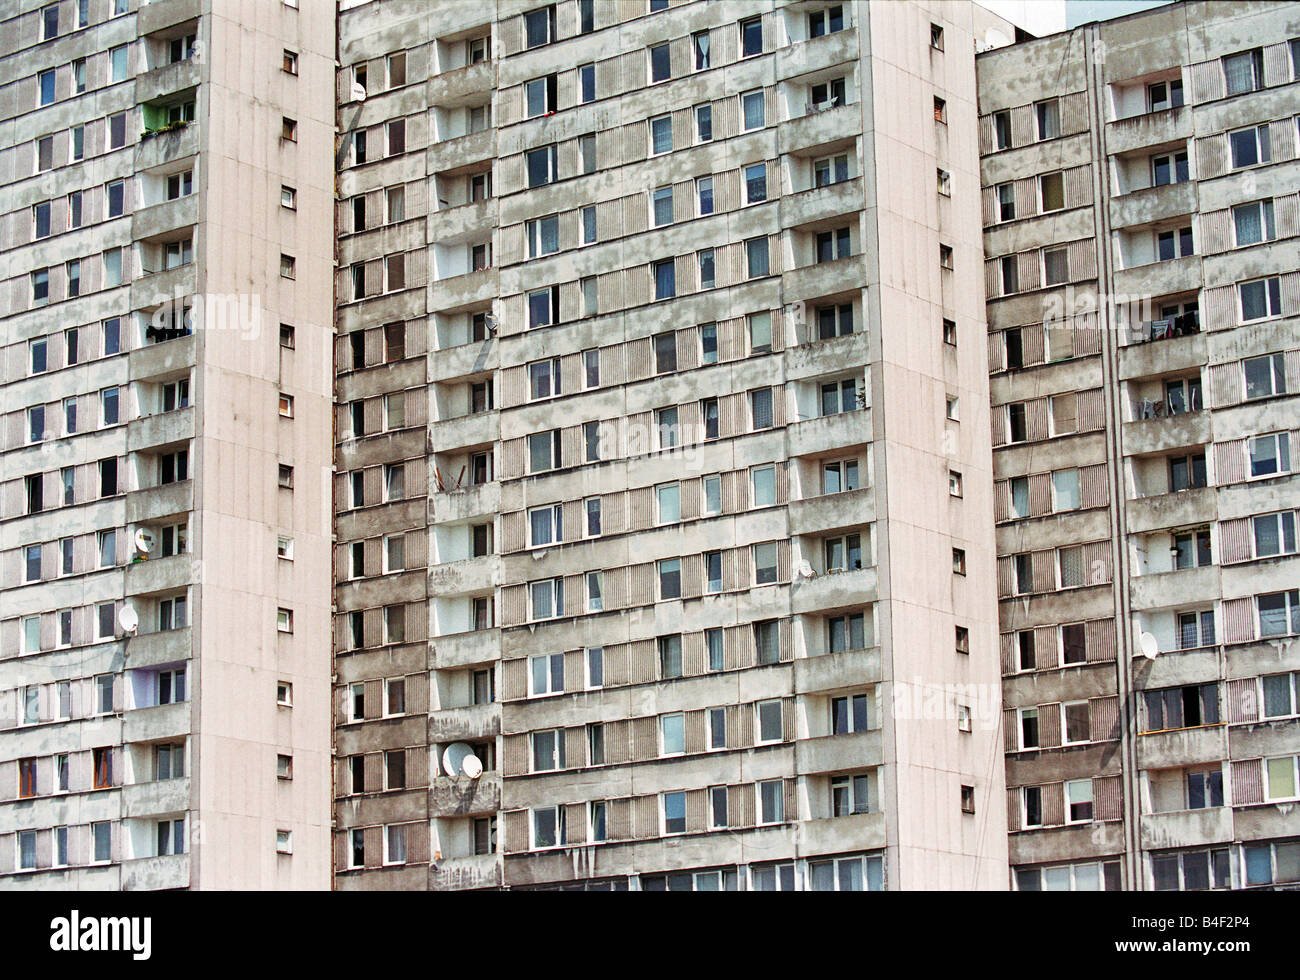 Blocks of flats in Lodz, Poland - Stock Image